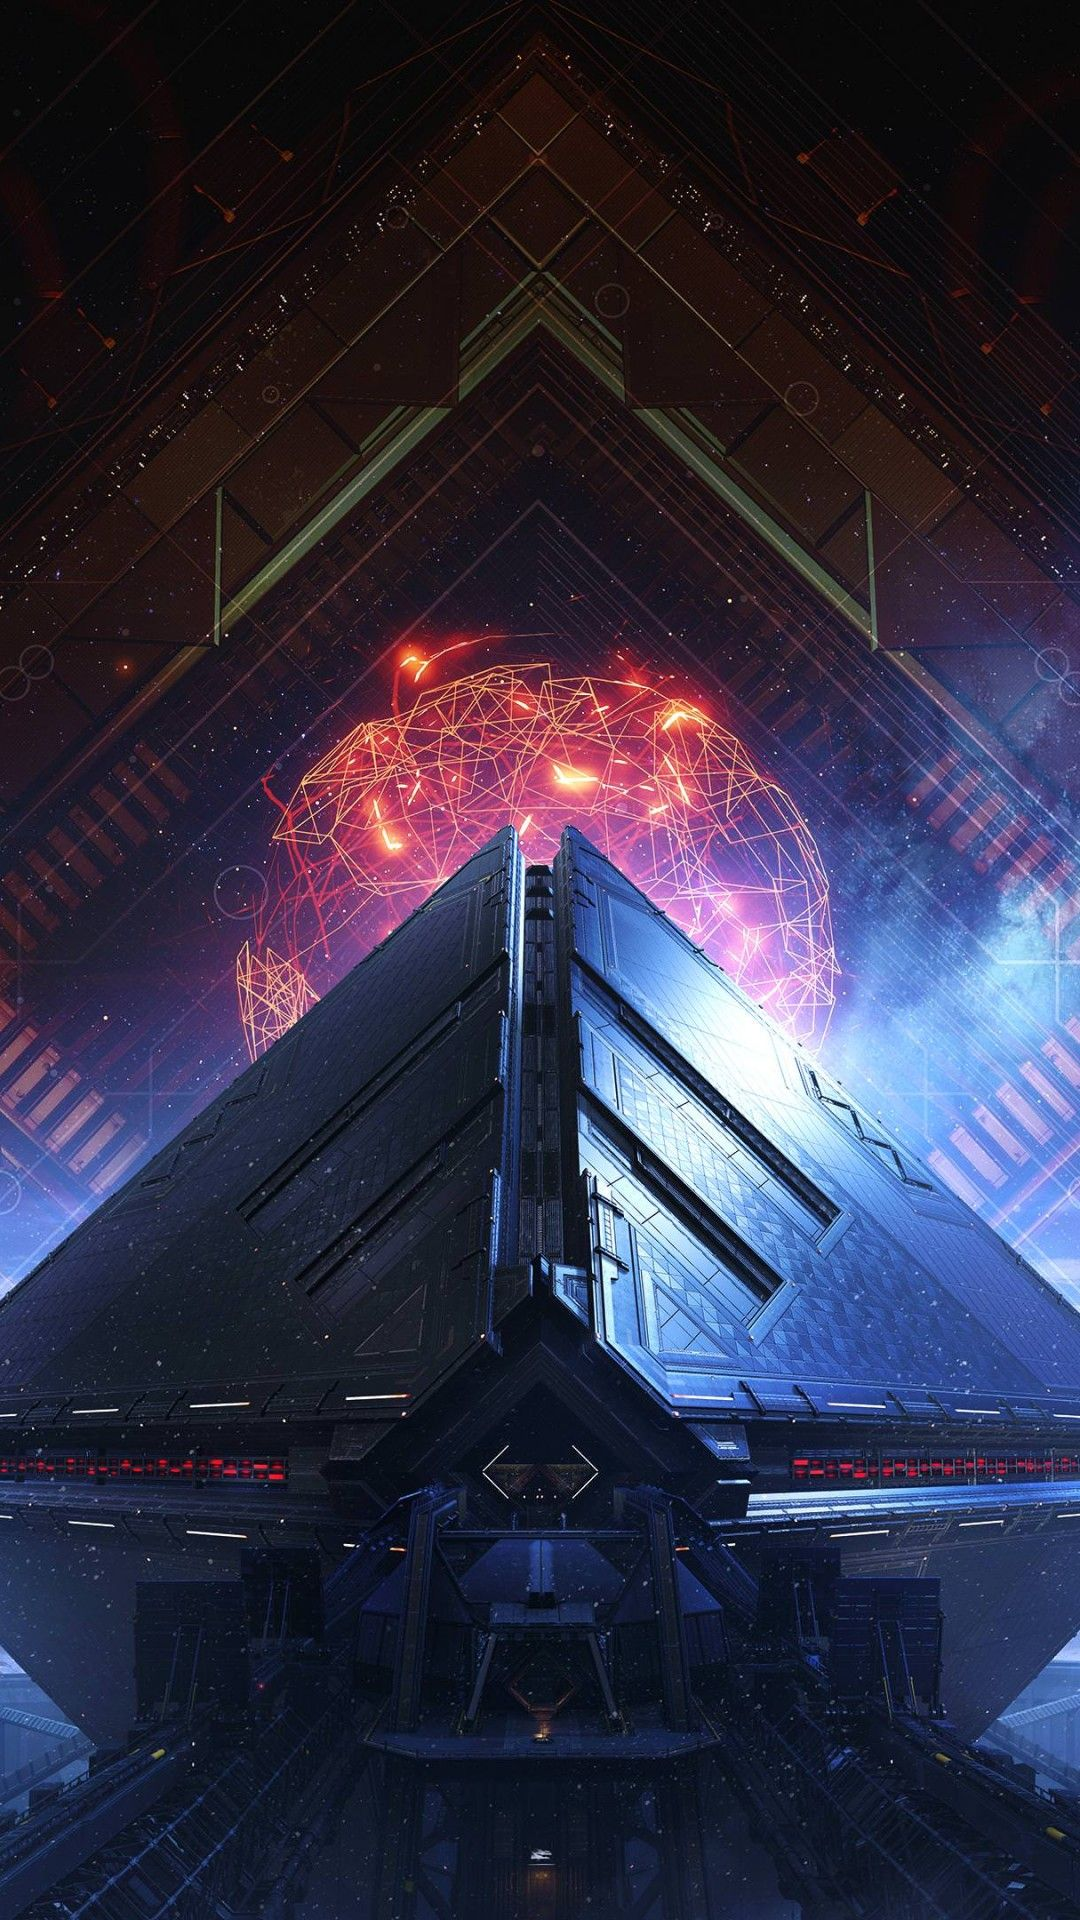 Destiny Wallpaper Iphone Background Hupages Download Iphone Wallpapers Sci Fi Wallpaper Destiny Game Pyramids